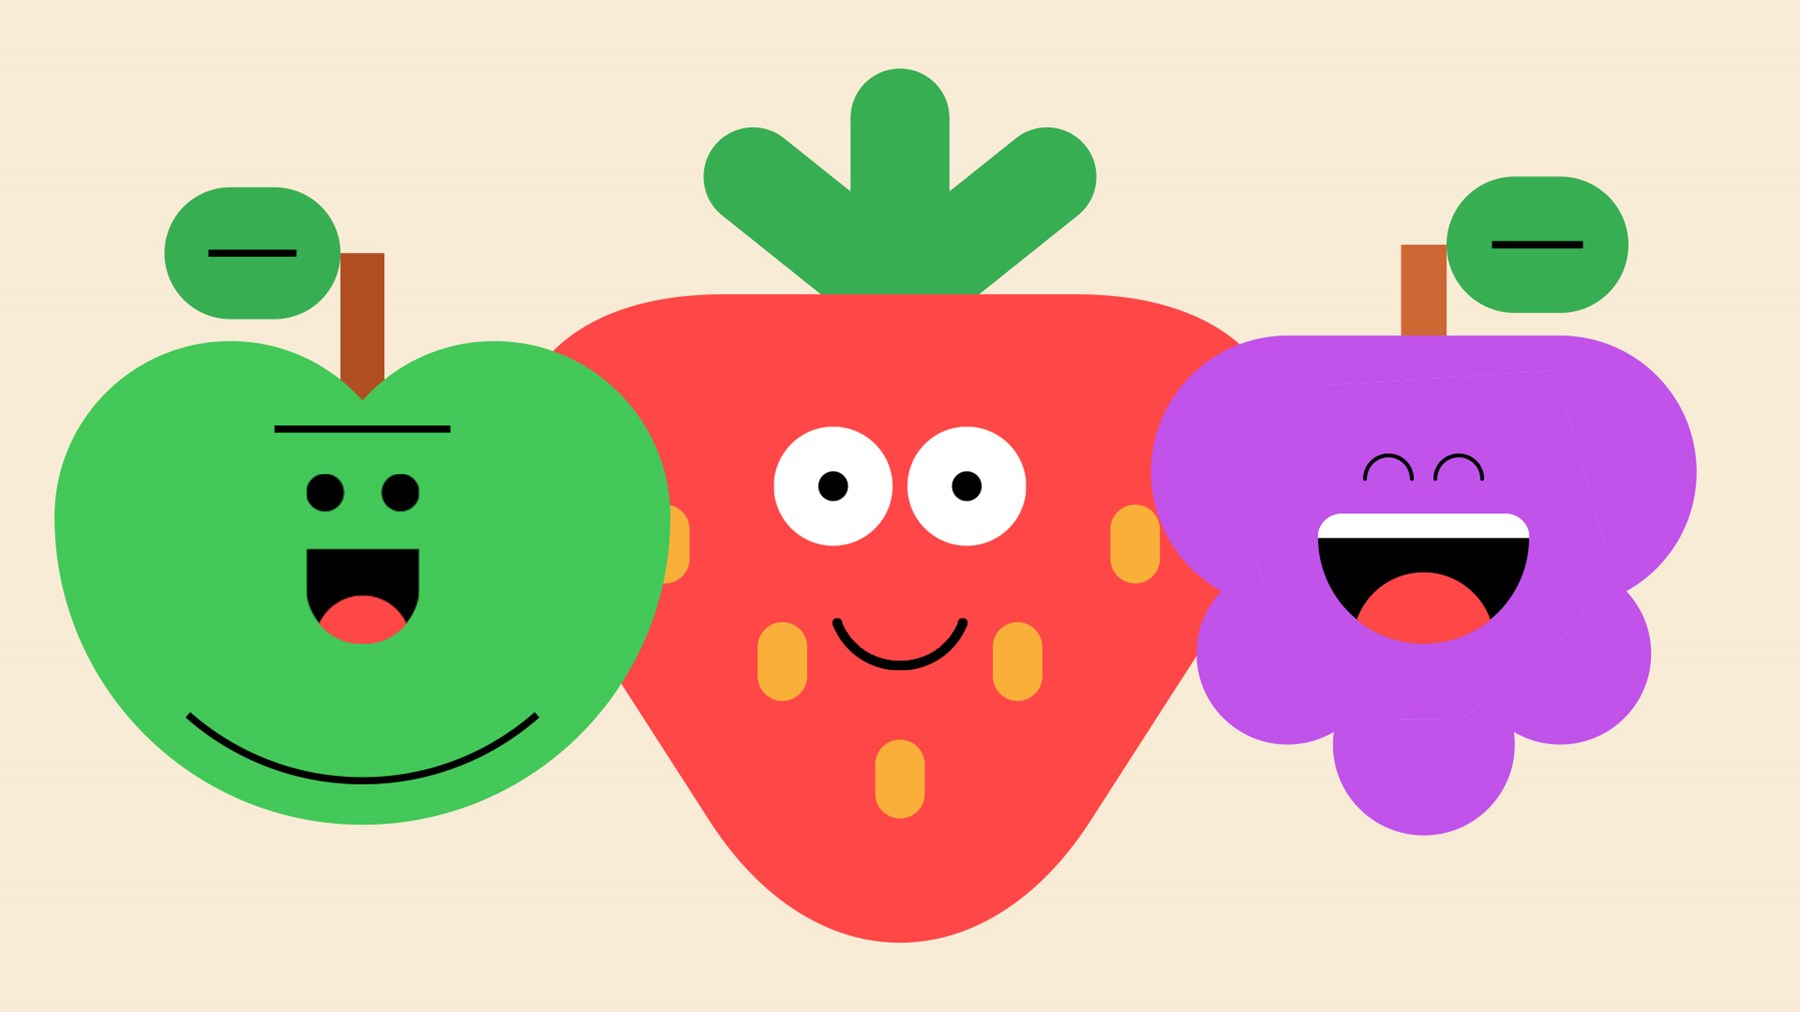 An apple, strawberry and blackberry with large smiles and googly eyes.